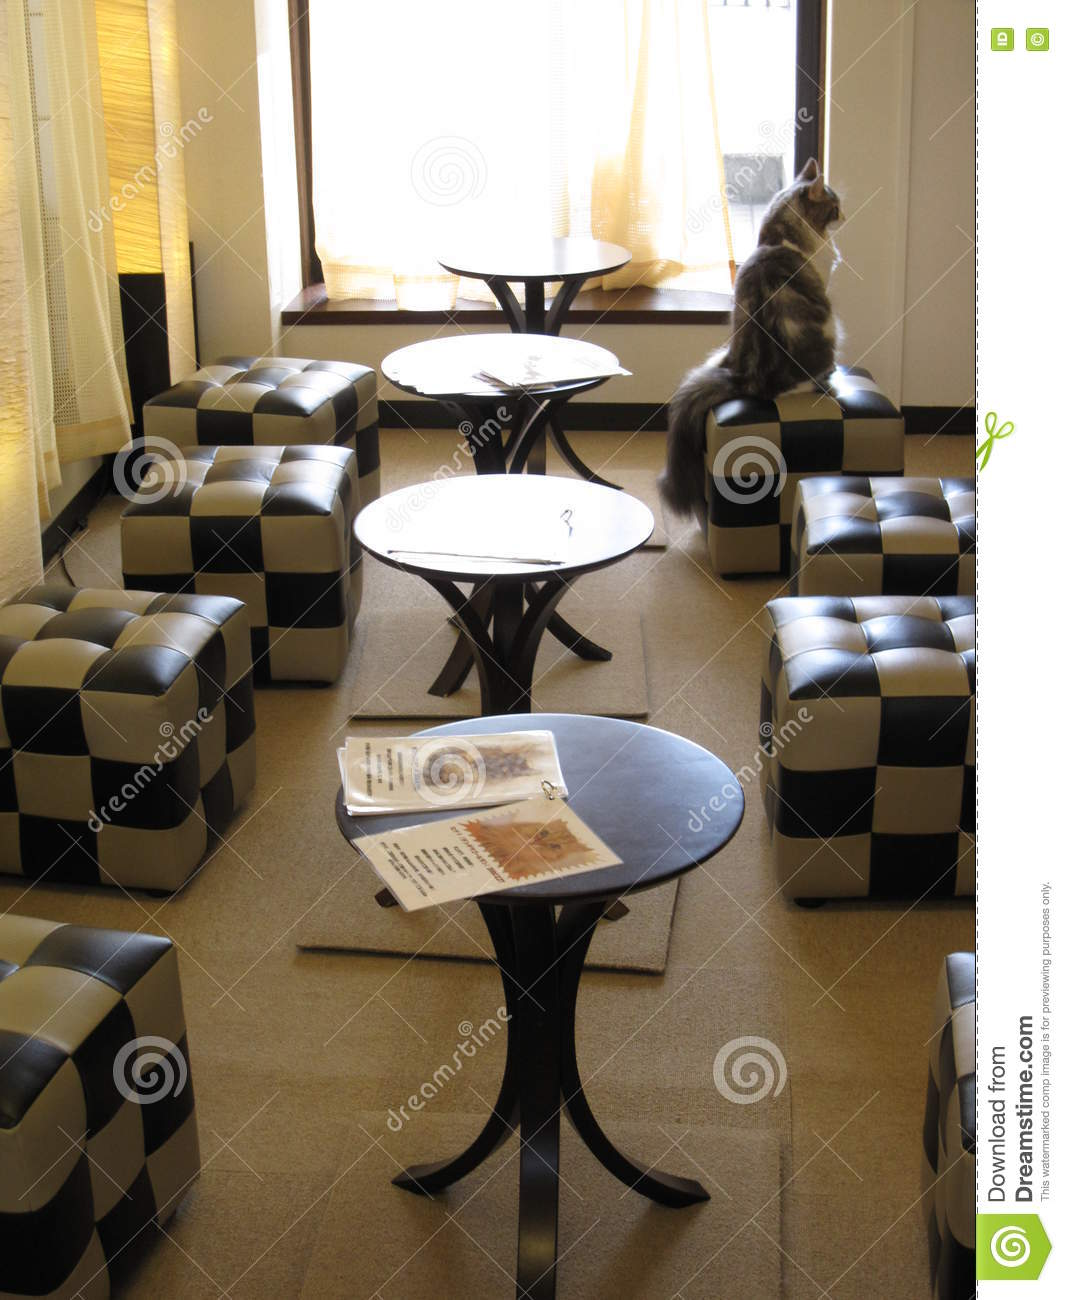 Japanese Cat Cafe With Chairs And Tables Stock Photo Image Of White Tokyo 74725892